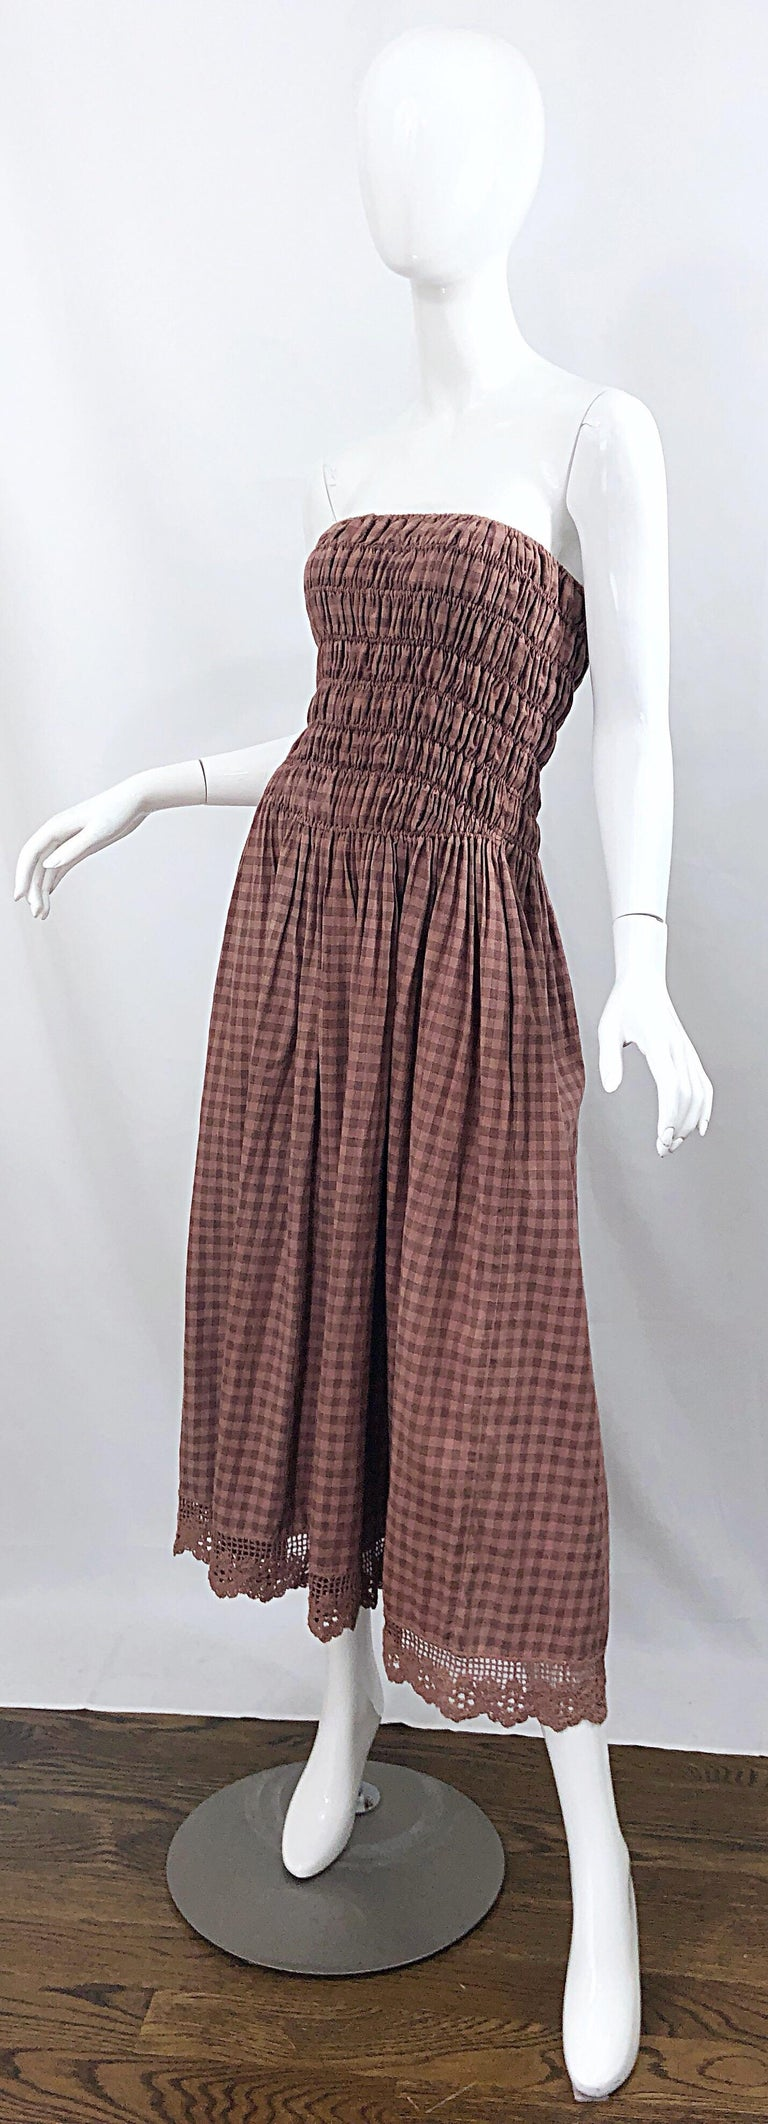 1970s Geoffrey Beene Dusty Rose Pink + Brown Crochet Strapless Ombre Midi Dress For Sale 3